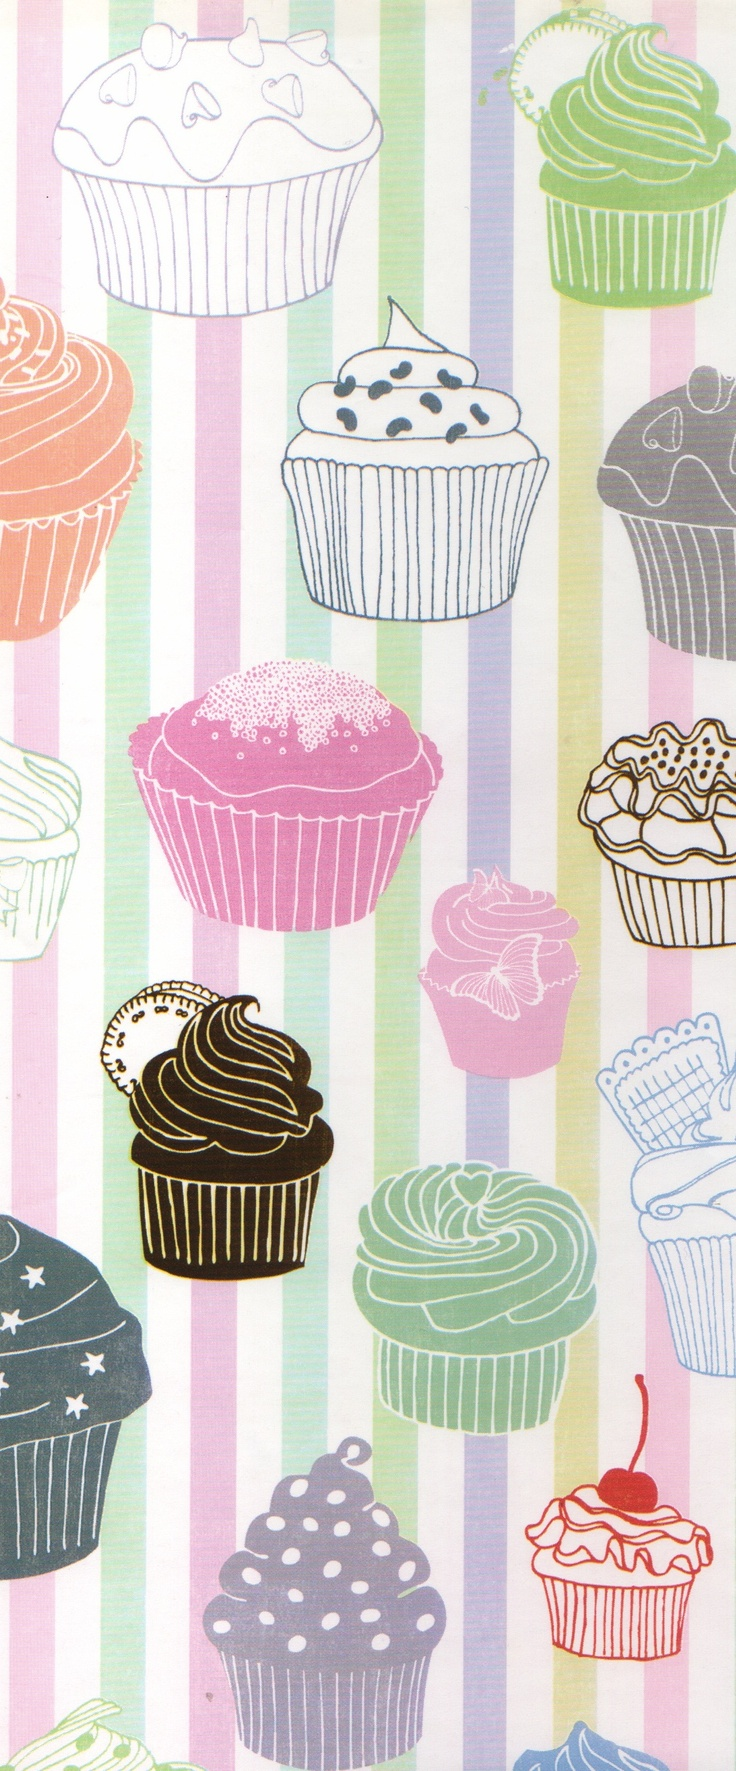 cupcake wrapping paper The christmas cupcakes gift wrapping paper is a heavy 26 in wide embossed gift wrap paper large 30 ft roll made in the usa from acorn spring gift wrapping.